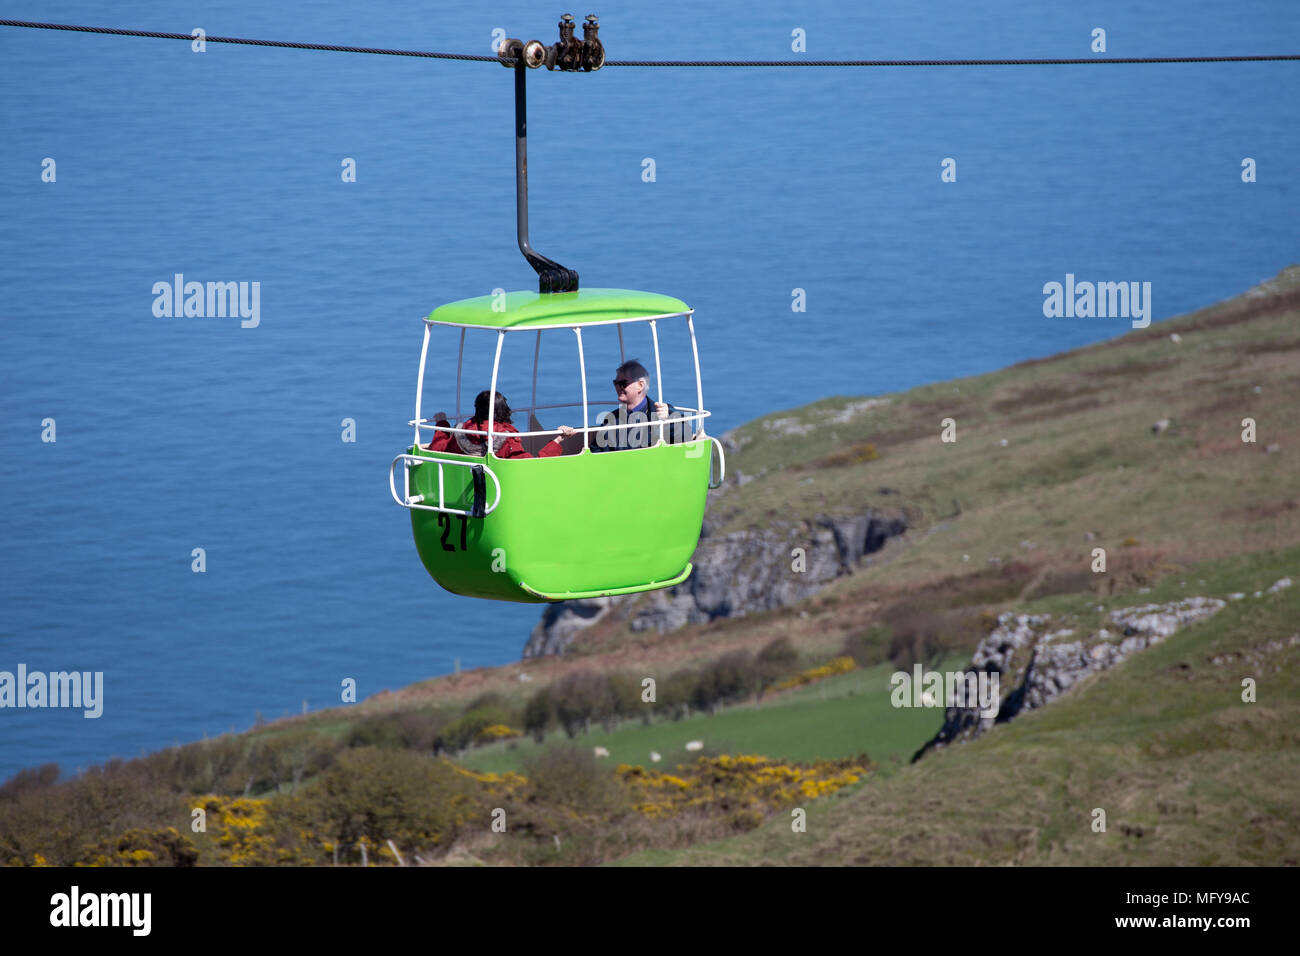 A view of the Llandudno cable car over the Great Orme in